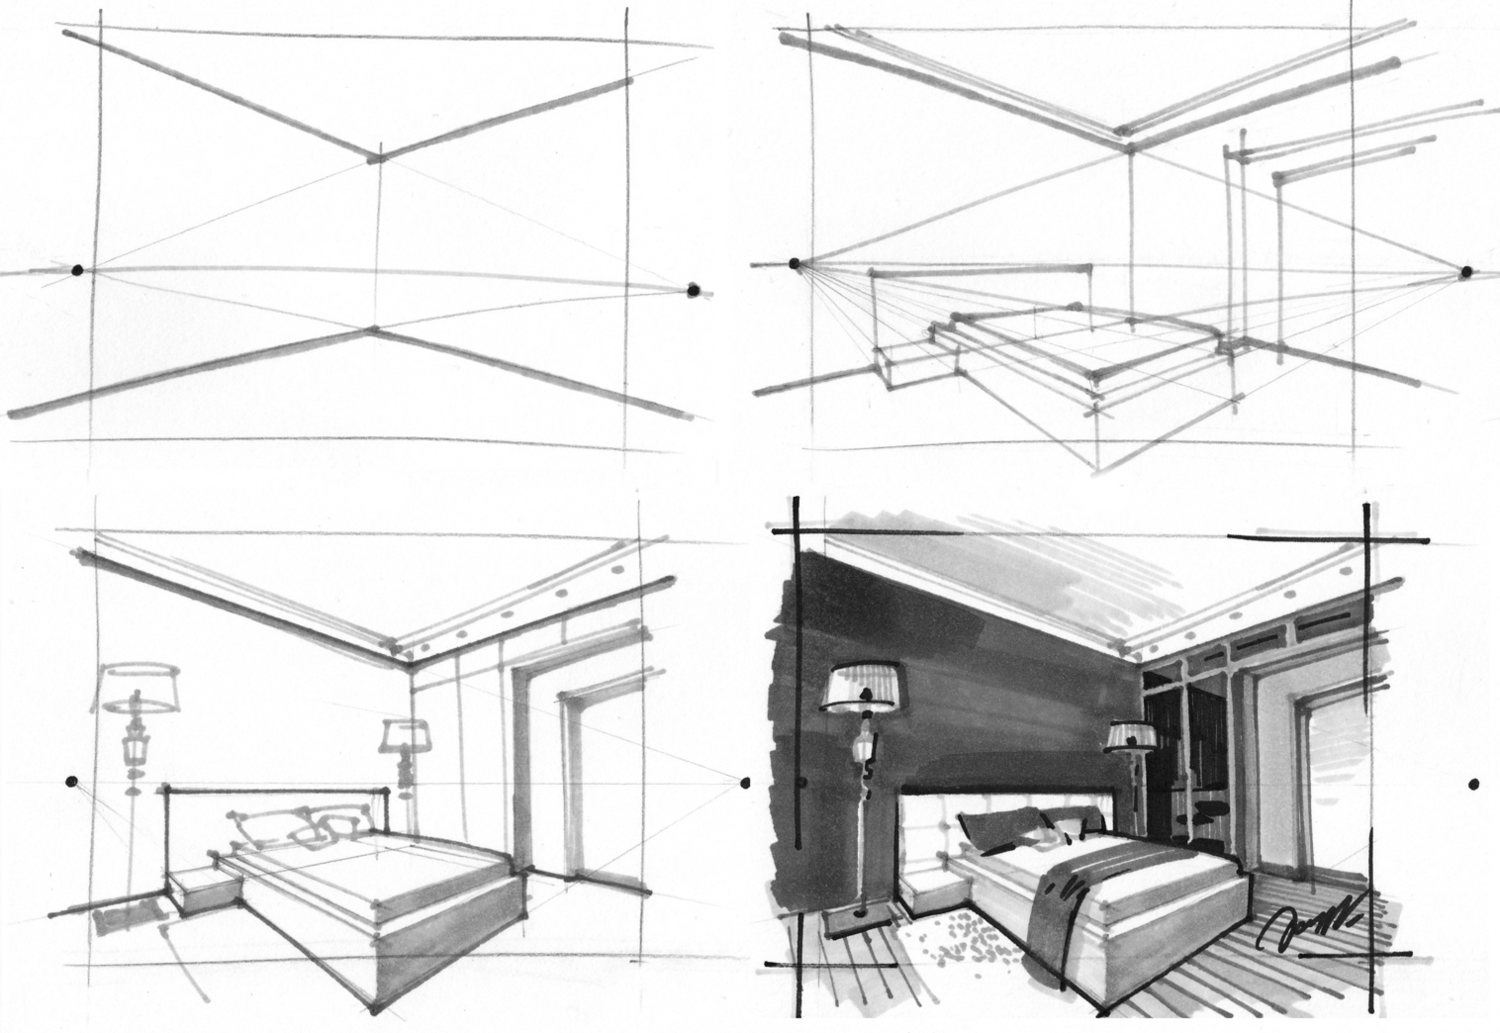 What is perspective in drawing, and what are the 2 most important types of perspectives? (Perspective basics for interior designers) — olgaart888